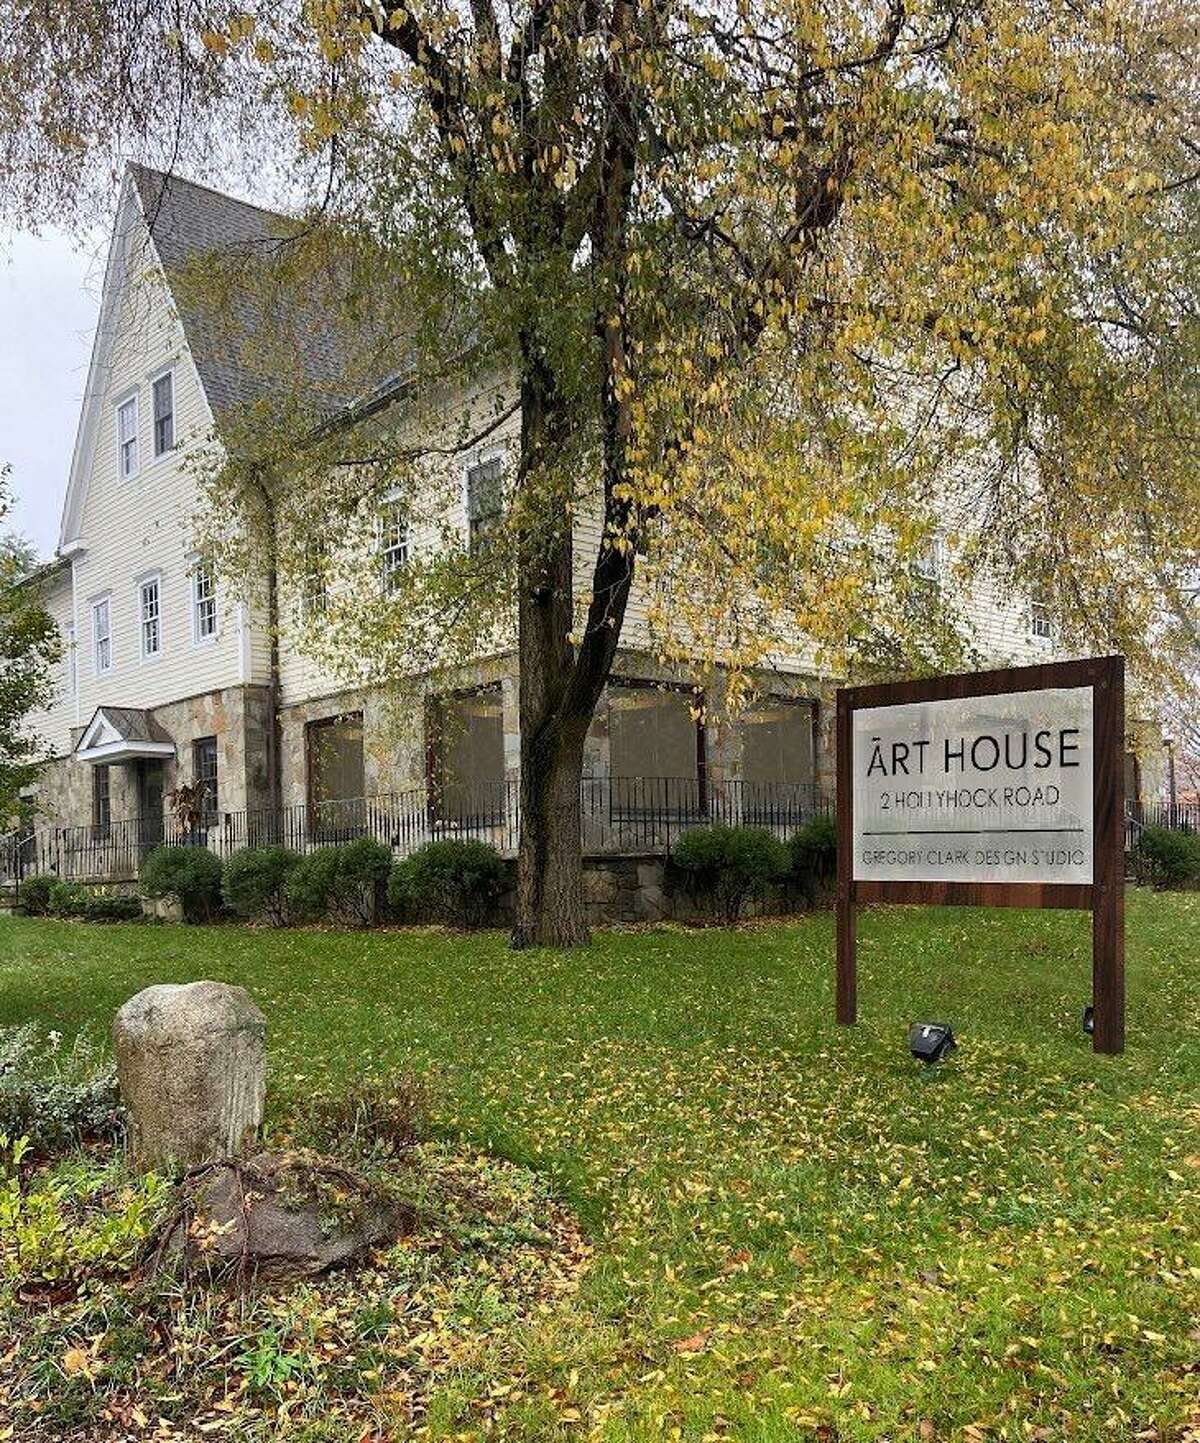 Art House, which sits at the intersection of Danbury Road and Hollyhock Road, is being proposed as a conversion from art studio and office space to apartments, several of which would be offered as affordable.